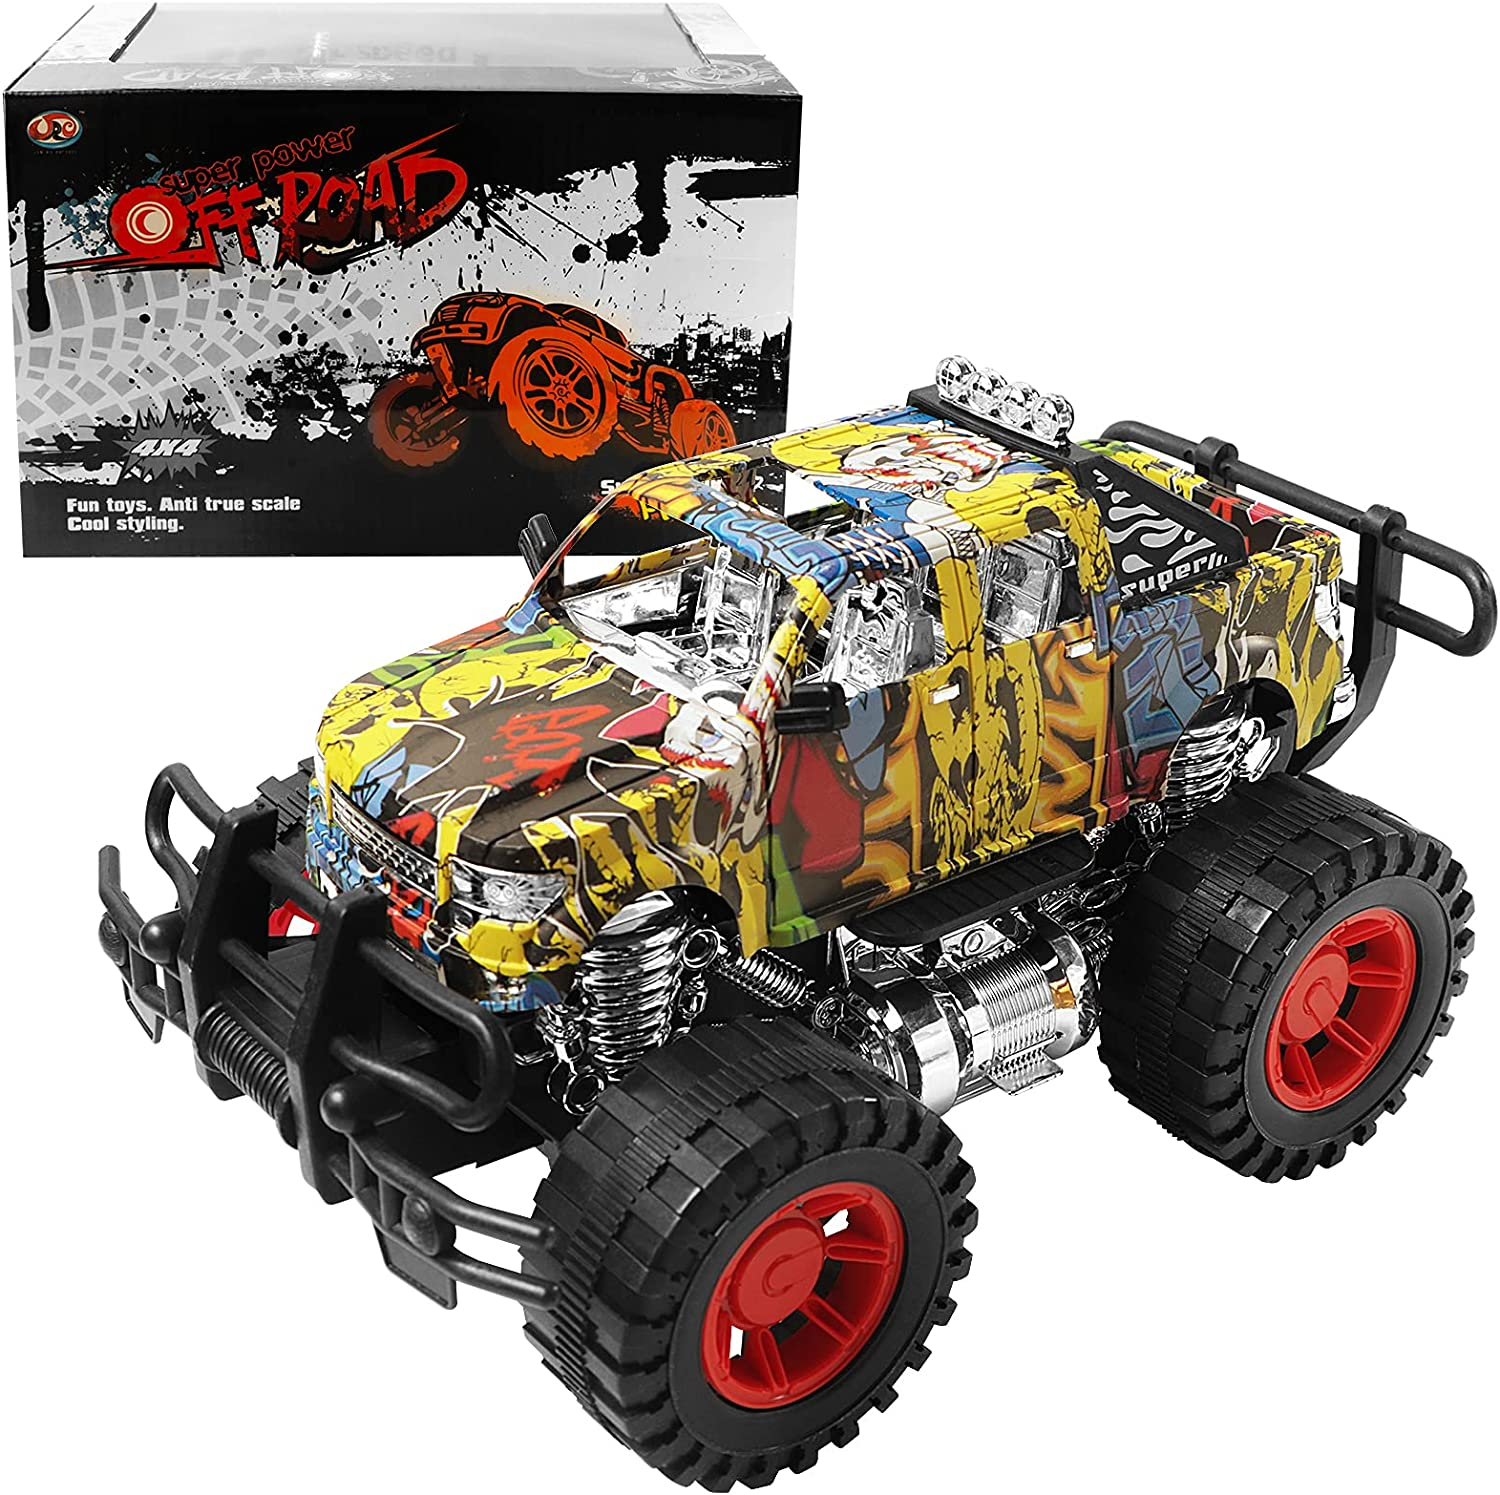 Friction Power Toy Vehicle 1 year warranty Trucks Age 3-7 Construct Popular product Boys for